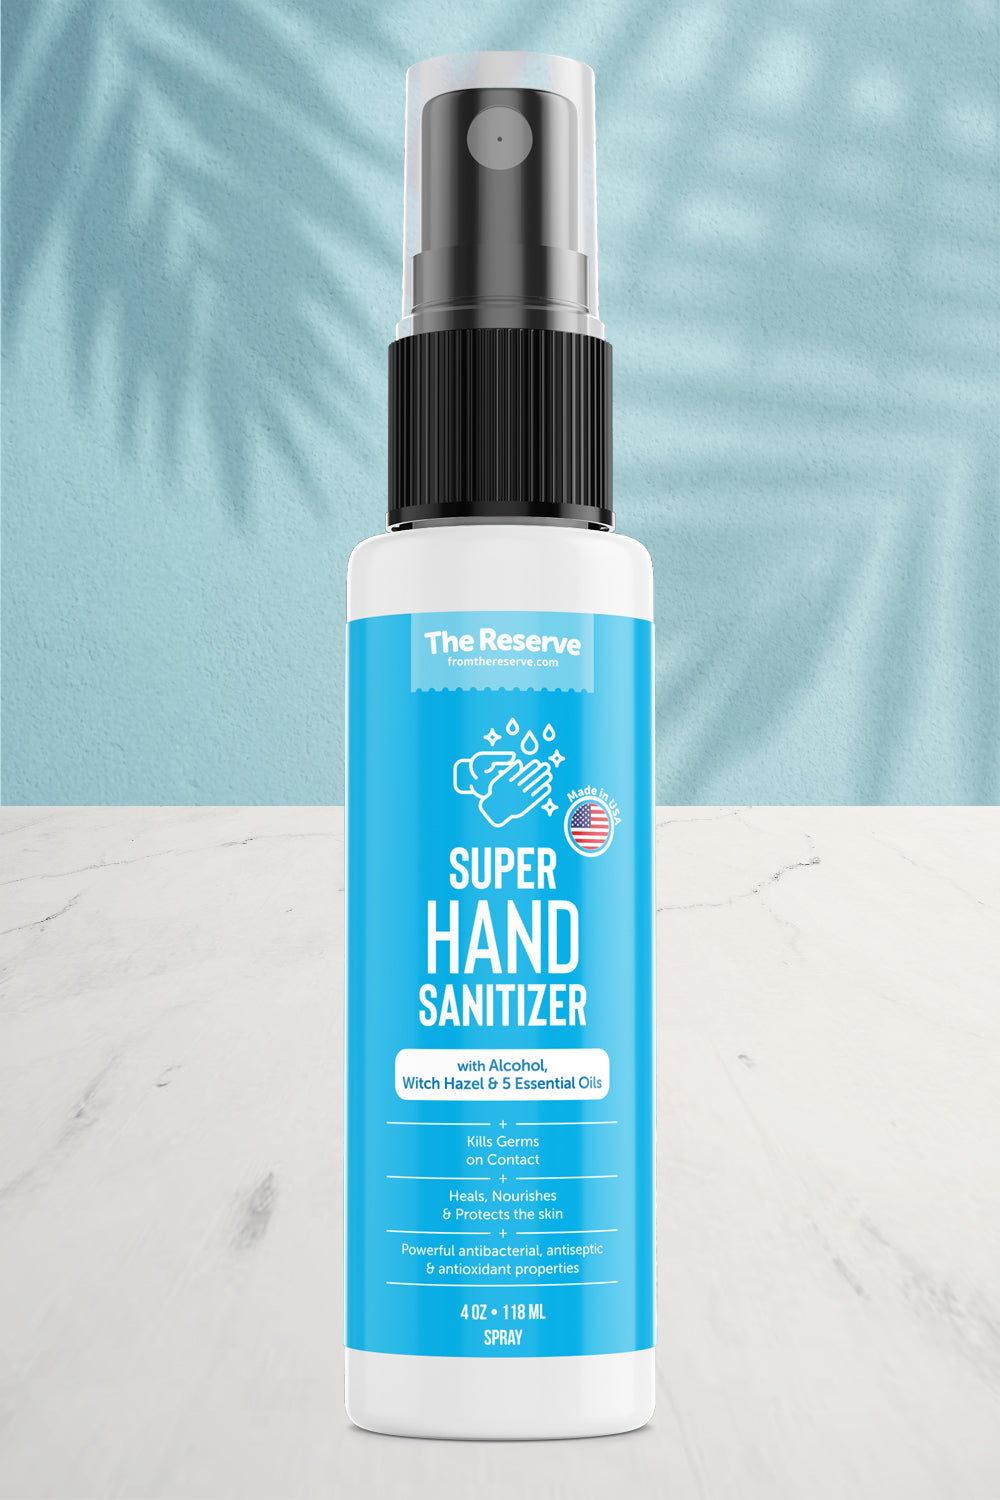 Super Hand Sanitizer - Alcohol & Essential Oils